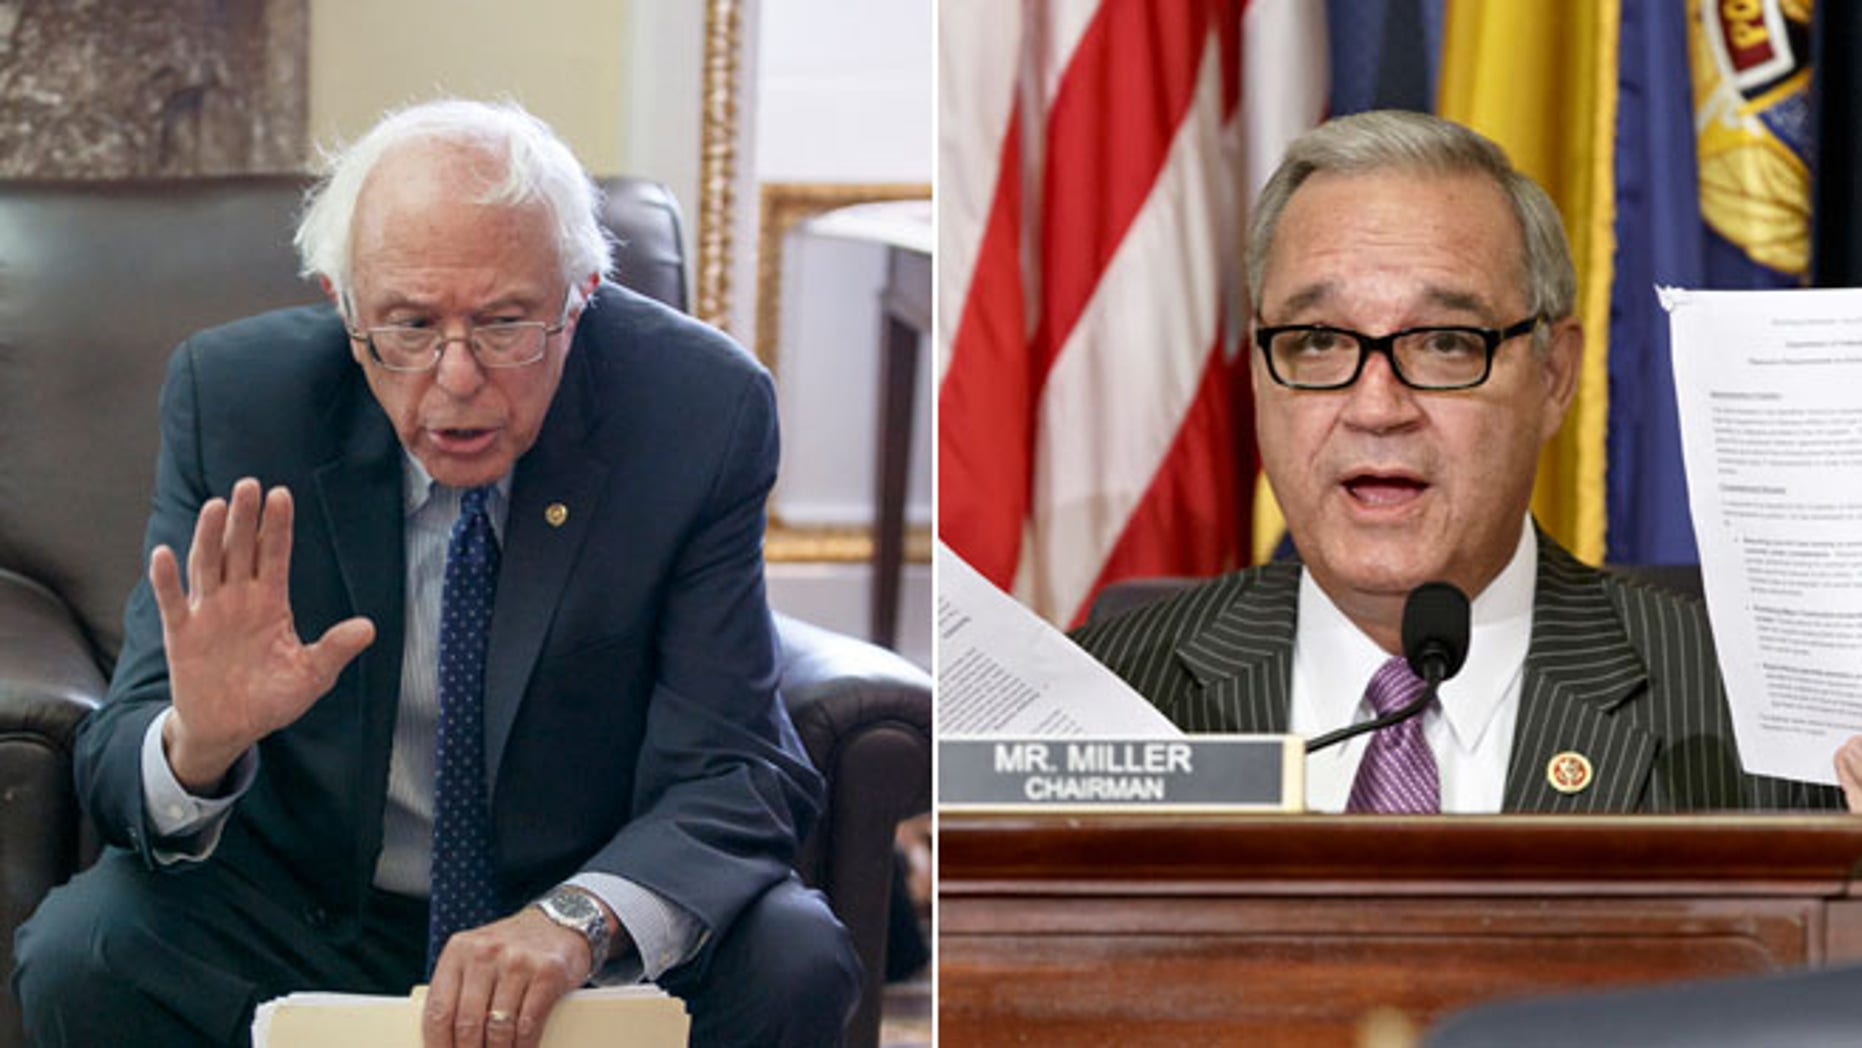 Senate Veterans Affairs Committee Chairman Sen. Bernie Sanders, I-Vt., Wednesday, July 23, 2014 and House Veterans Affairs Committee Chairman Jeff Miller, R-Fla., Thursday, July 24, 2014.